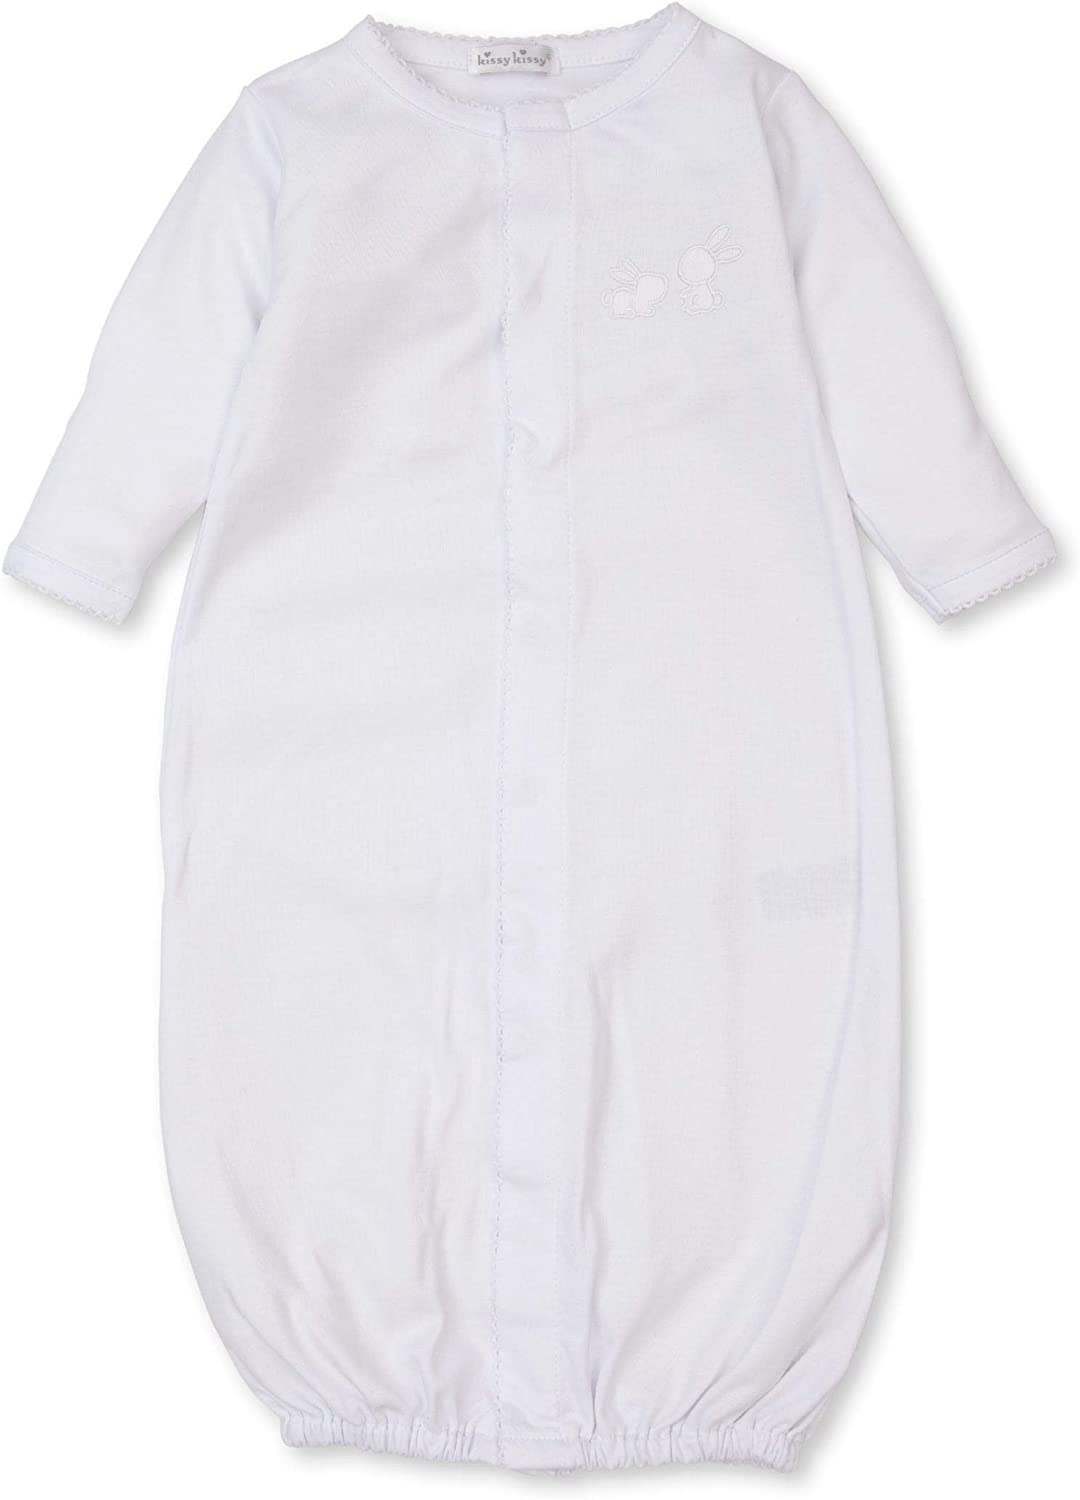 Kissy Kissy Unisex-Baby Infant Pique Bunny Fam Convertible Gown